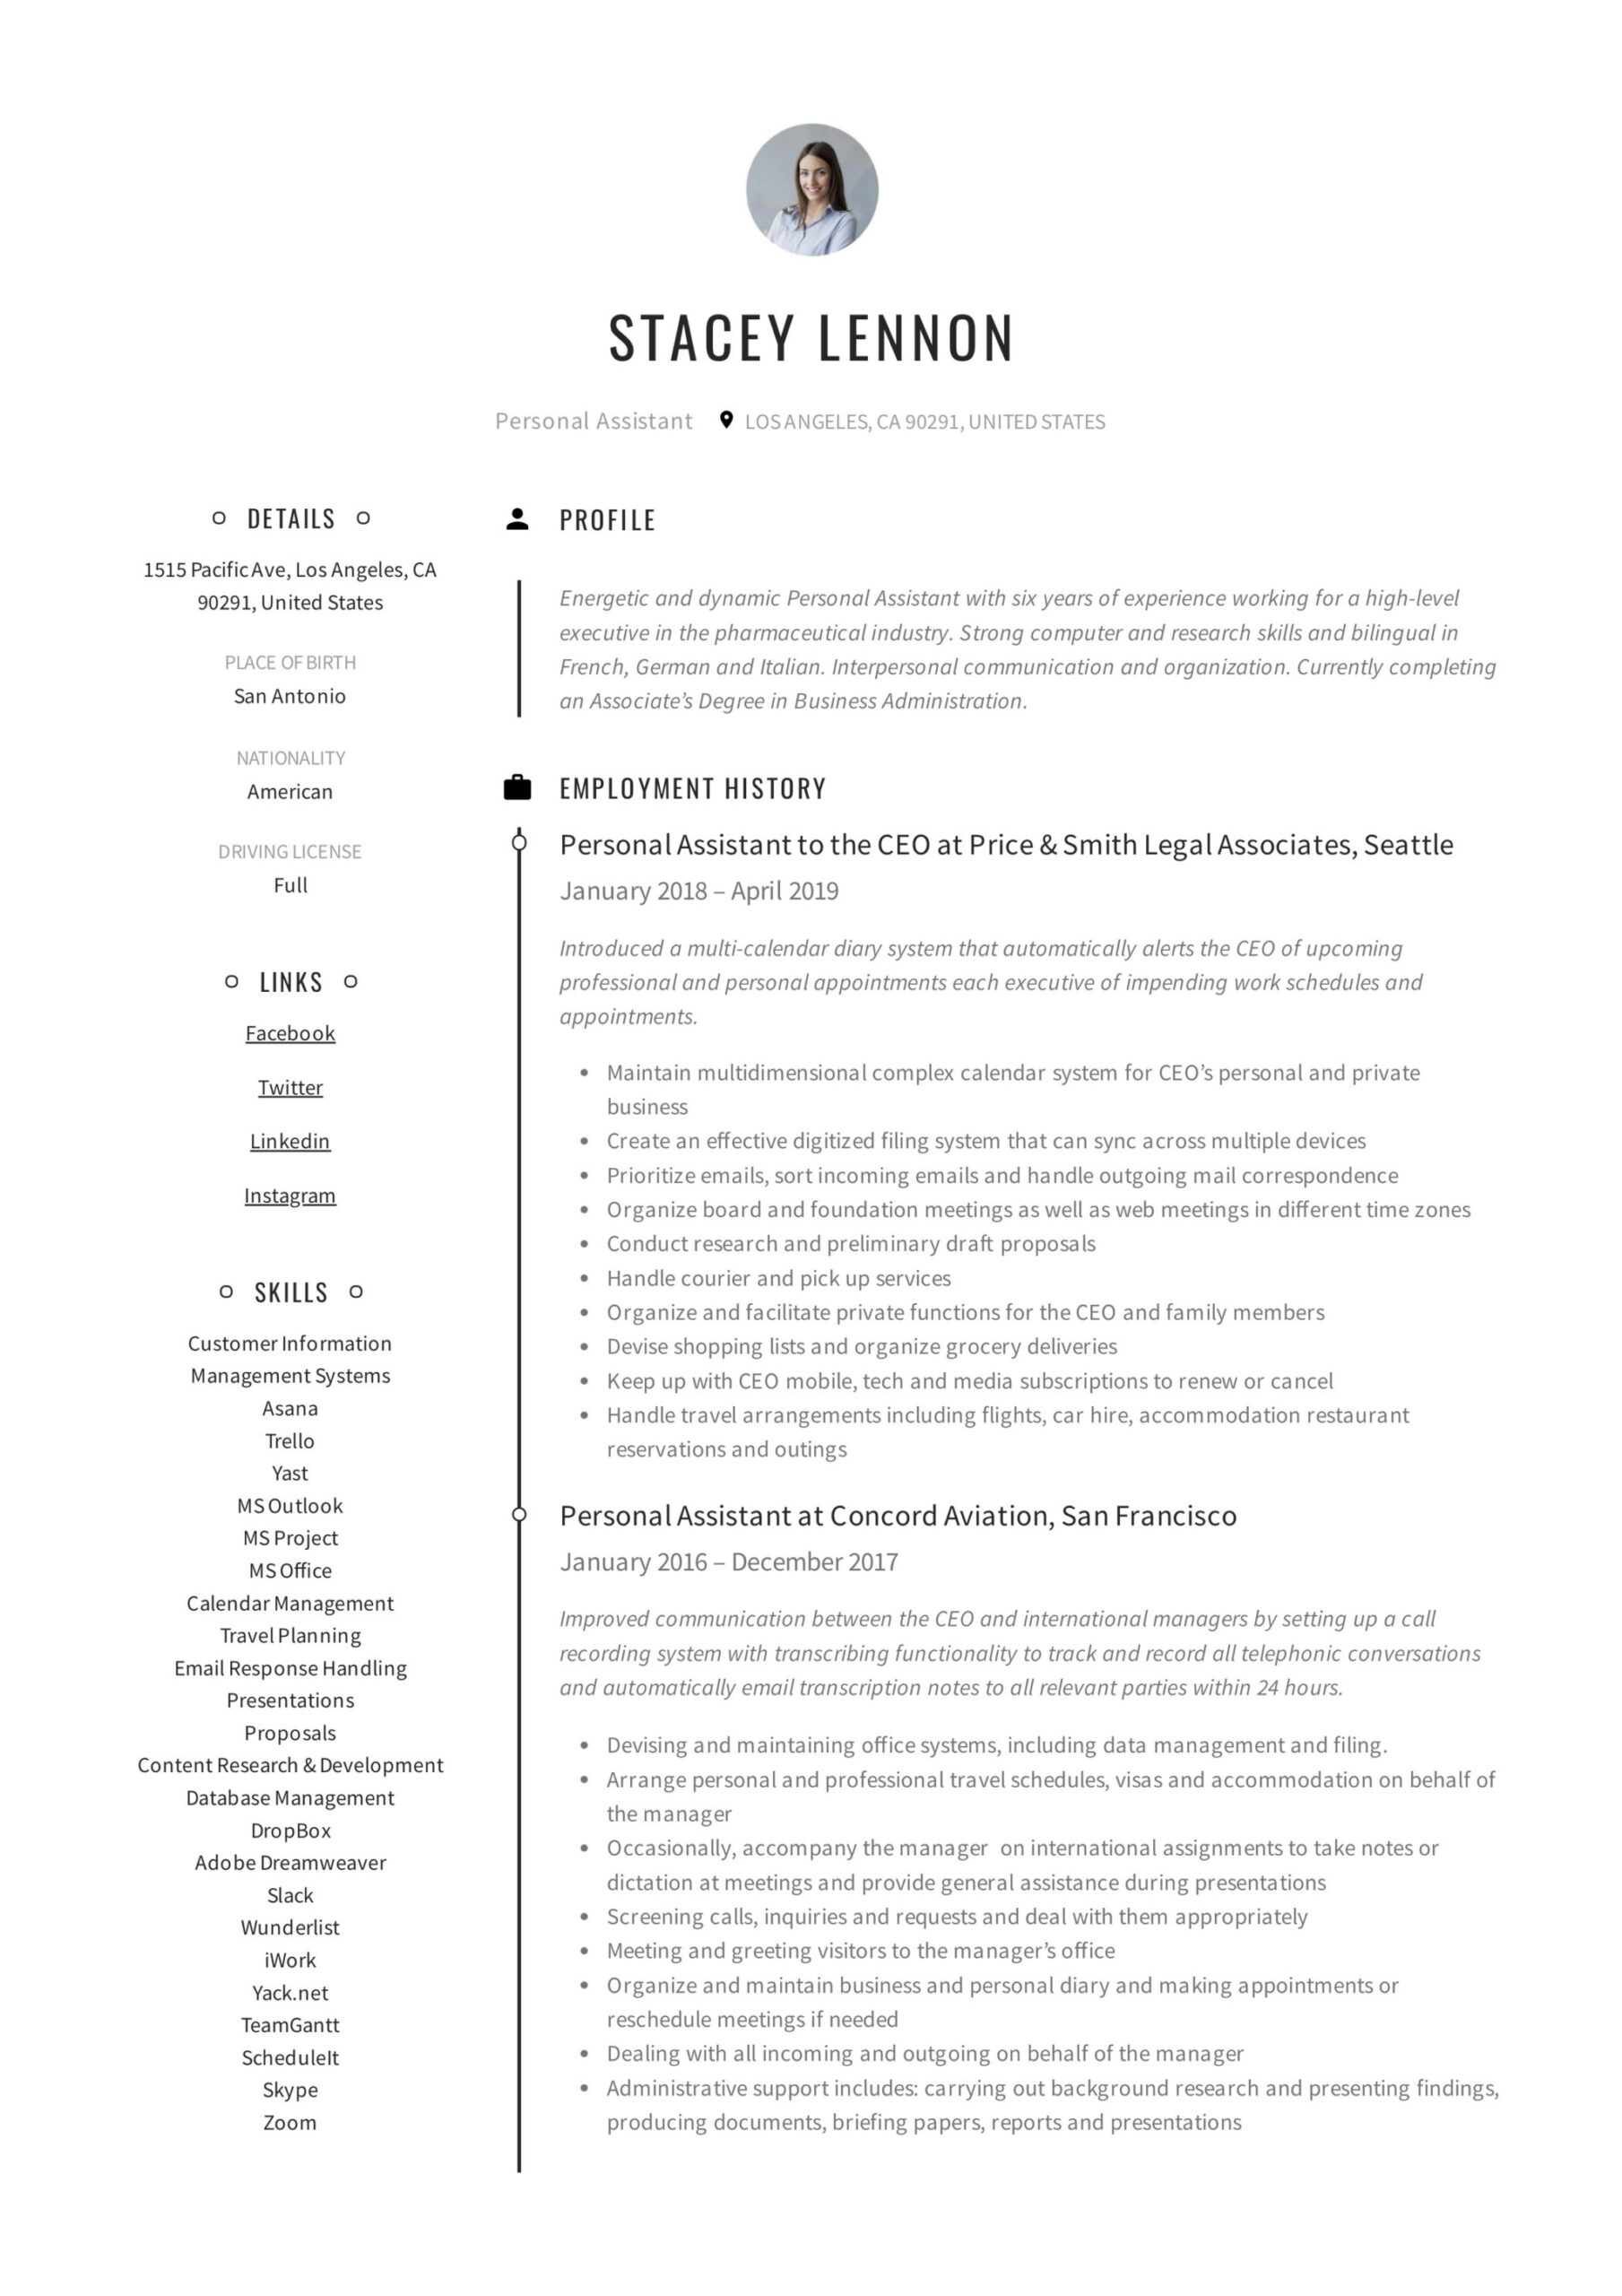 personal assistant resume writing guide templates pdf skills high school student music Resume Personal Assistant Skills Resume